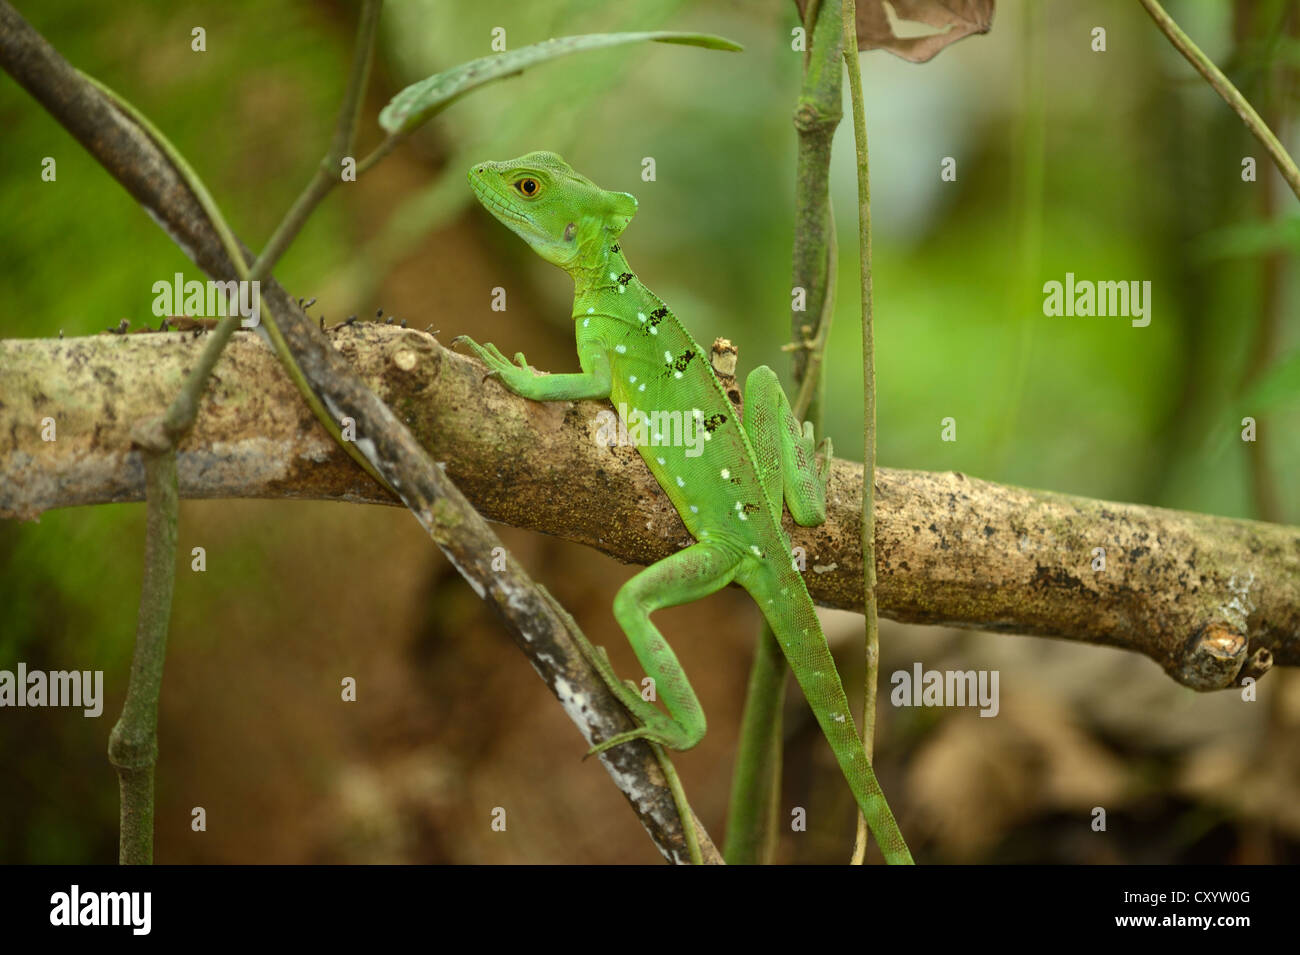 Plumed basilisk, Green basilisk, Double crested basilisk or Jesus Christ lizard (Basiliscus plumifrons), female Stock Photo